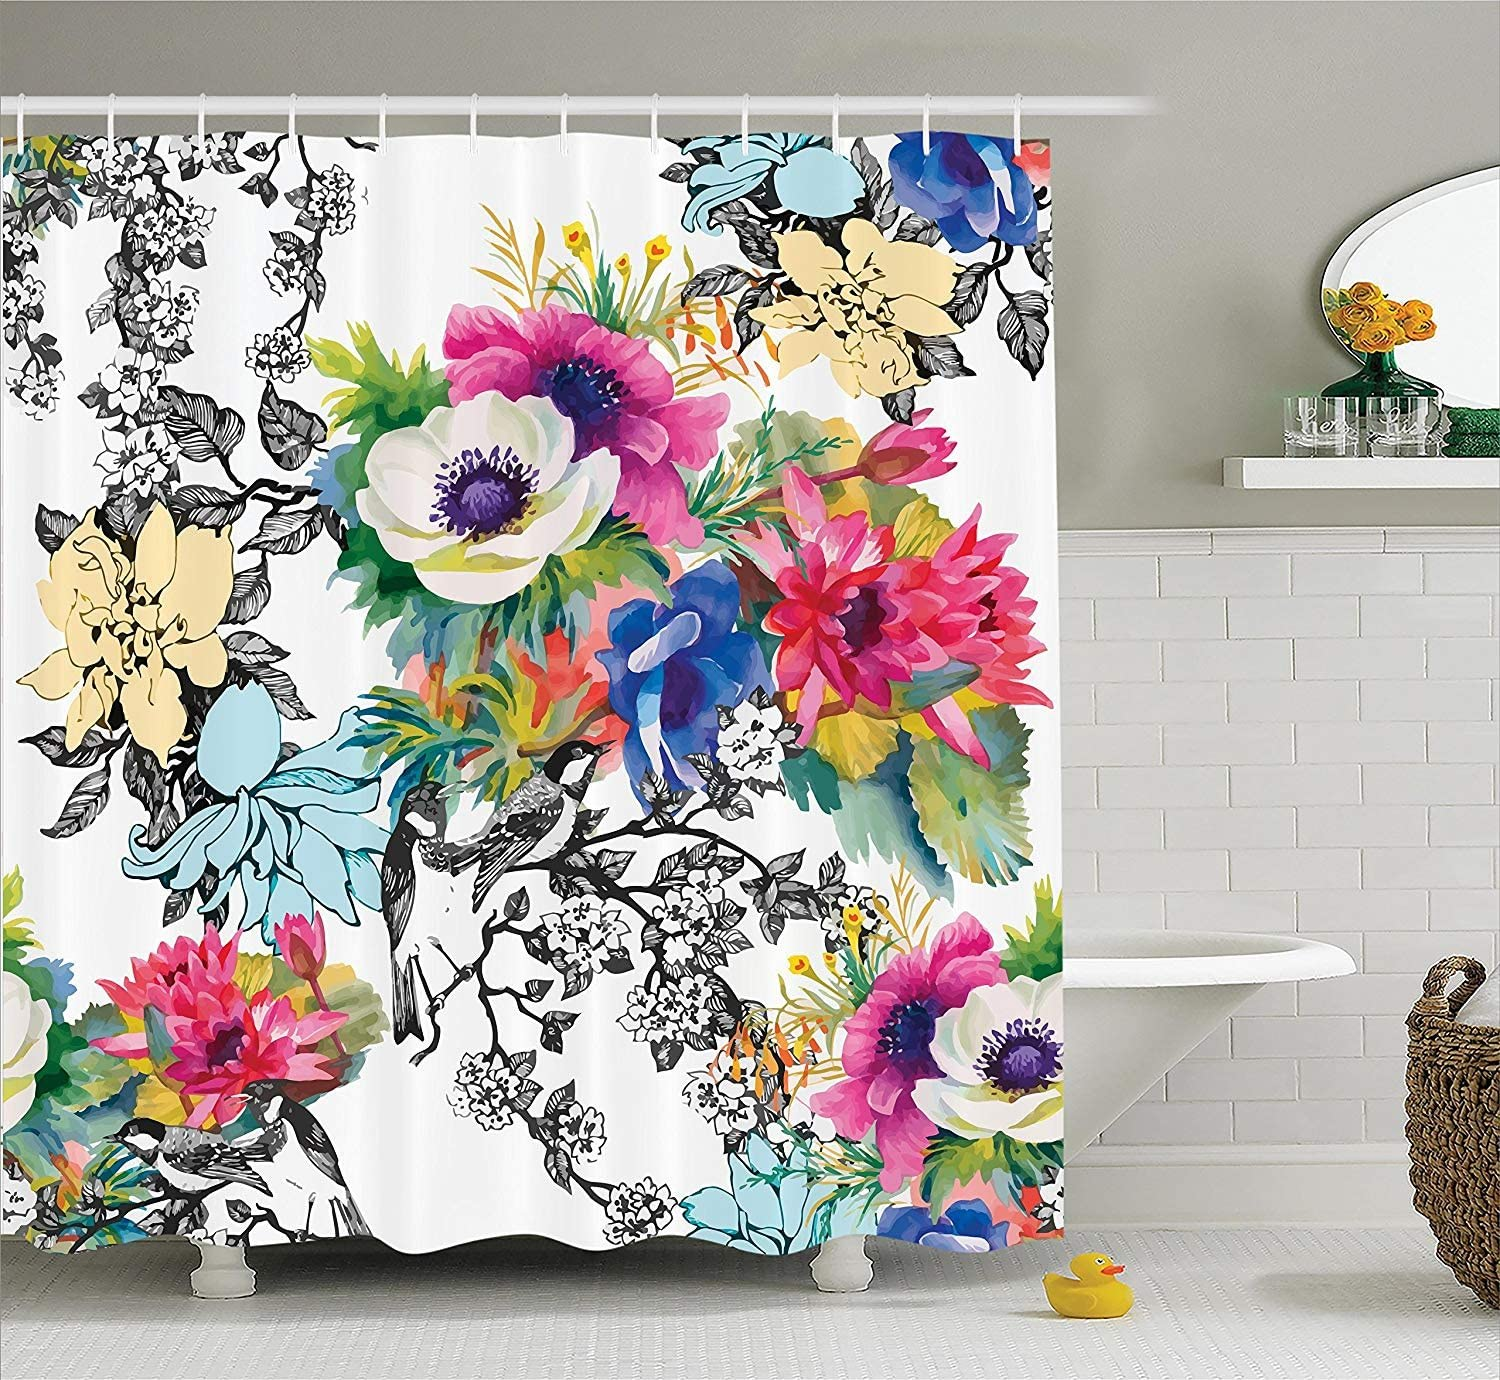 "Ambesonne Flower Shower Curtain, Vivid Colorful Garden Print Blossoming Wildflowers Birds Leaves Branches, Cloth Fabric Bathroom Decor Set with Hooks, 70"" Long, Rainbow"